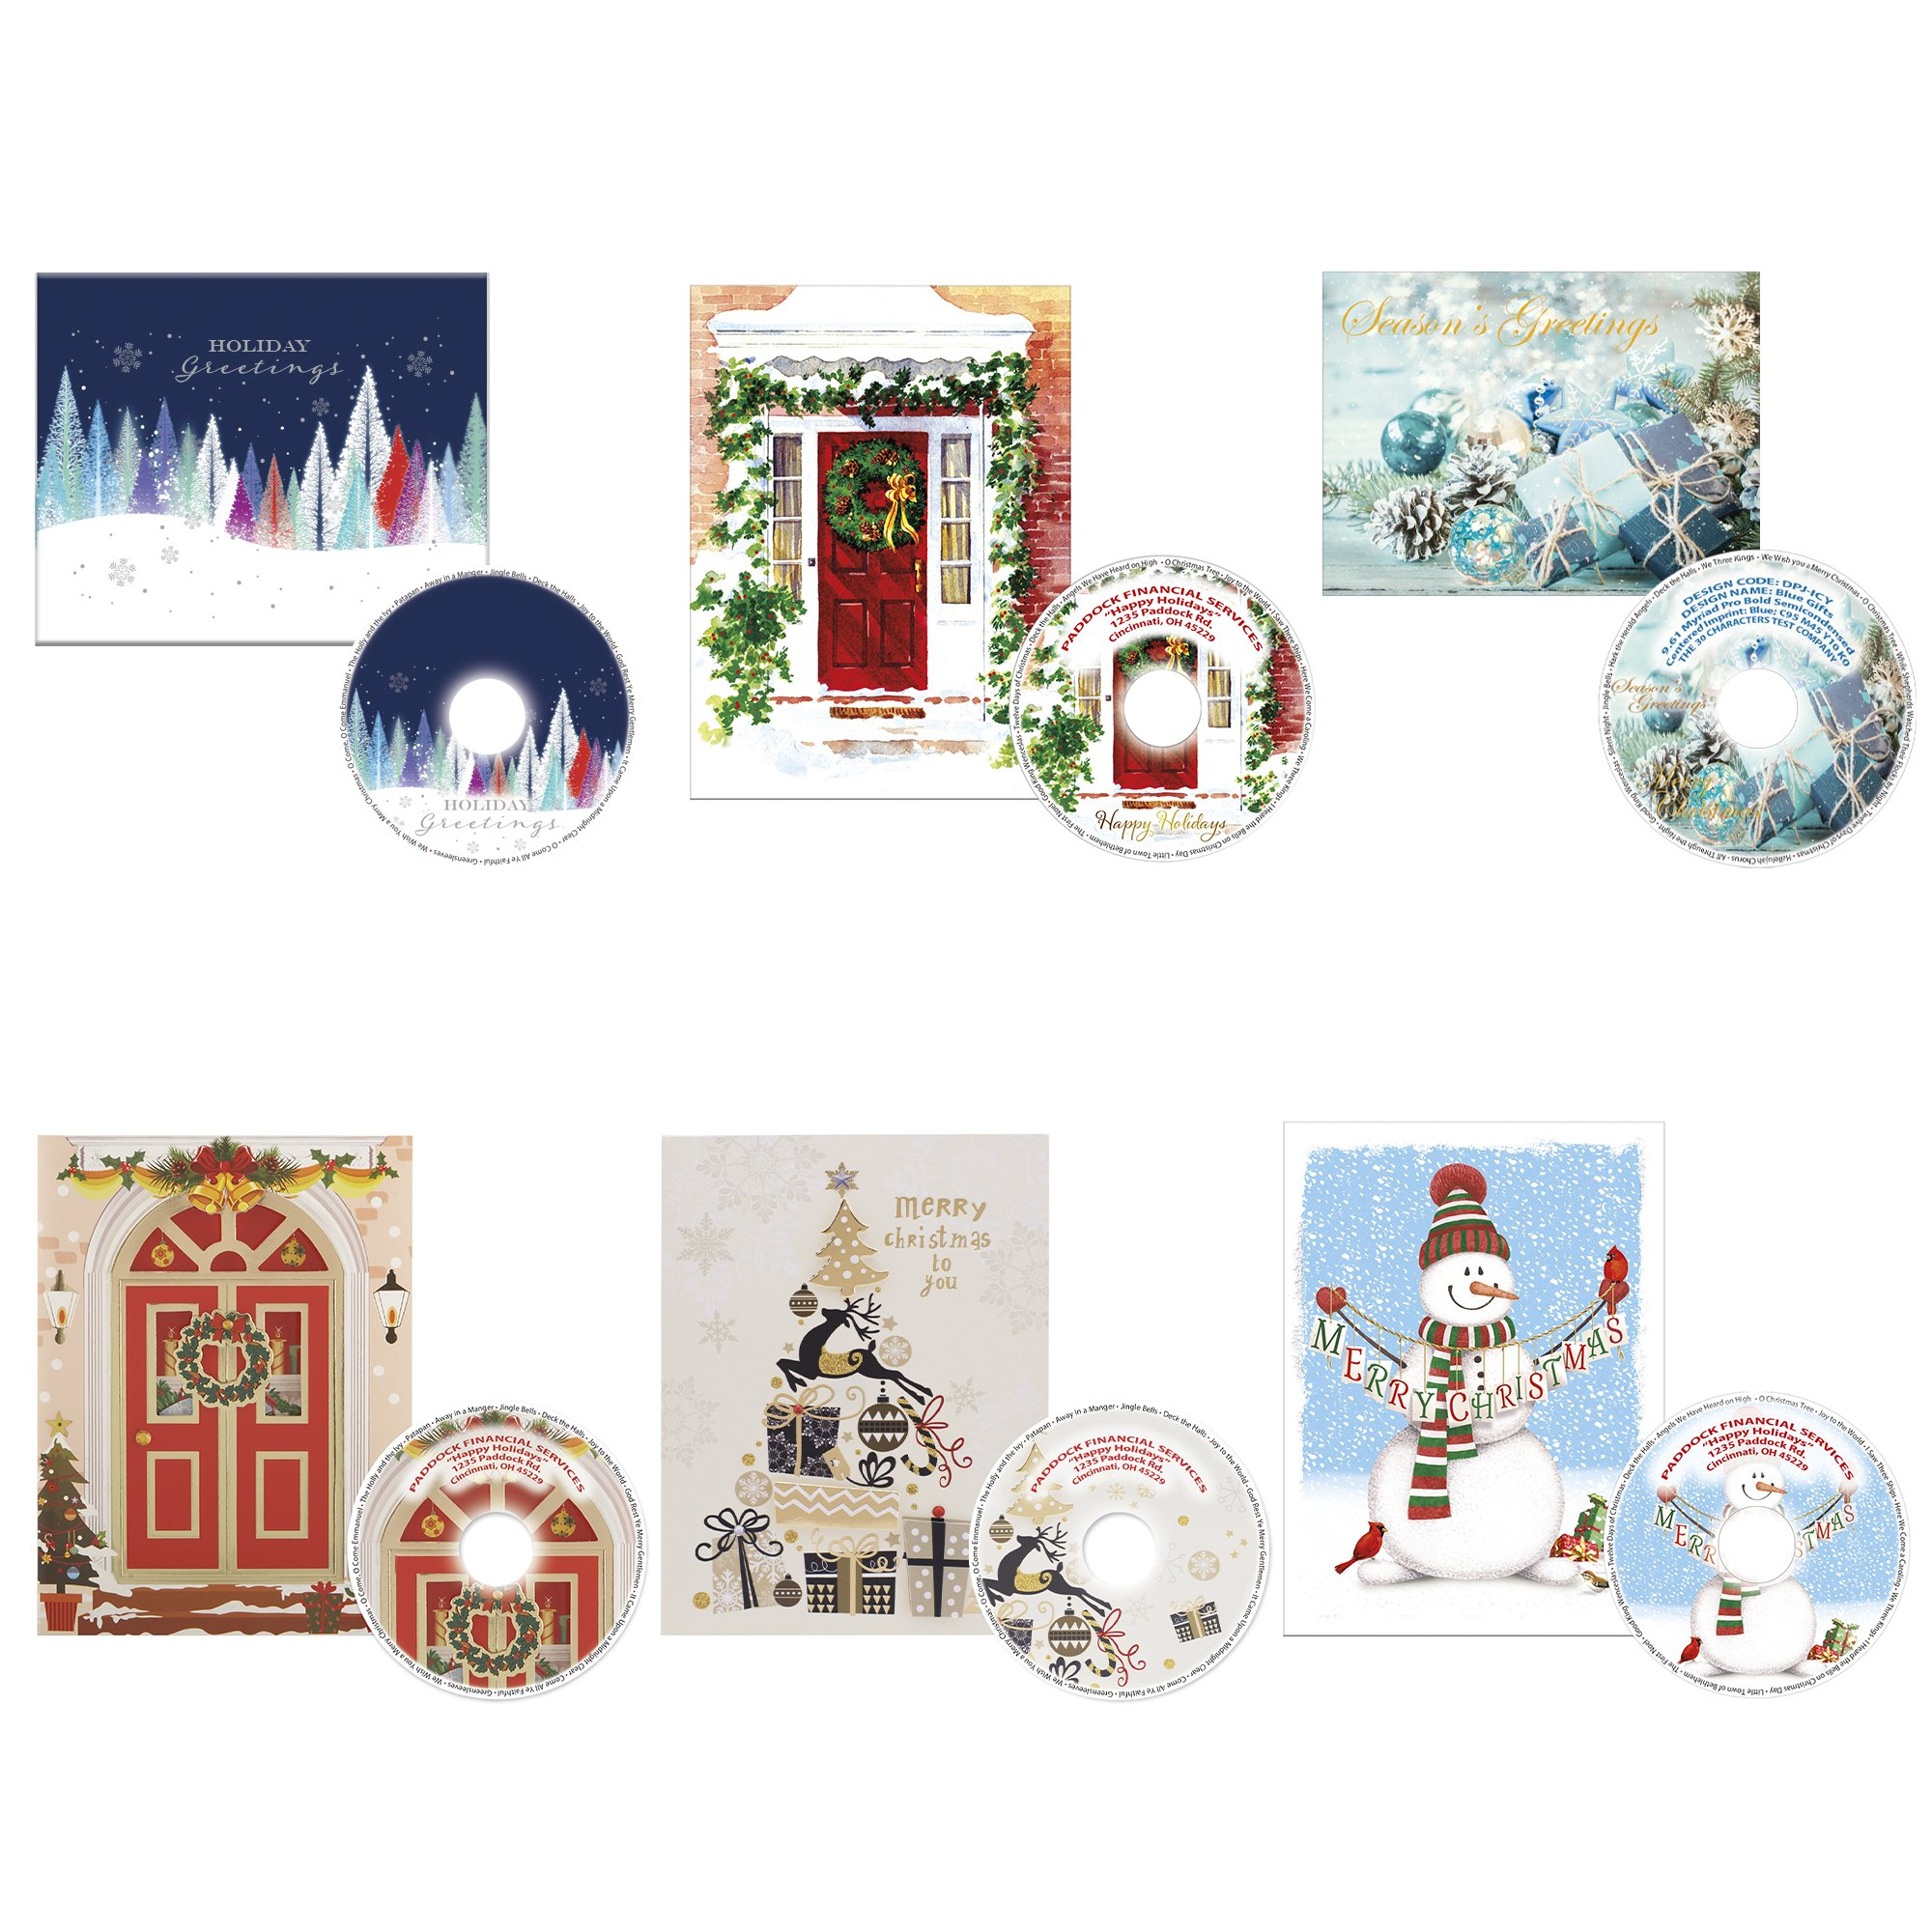 britebrand christmas cards with classic holiday songs cd national pen britebrand christmas cards with classic holiday songs cd national pen